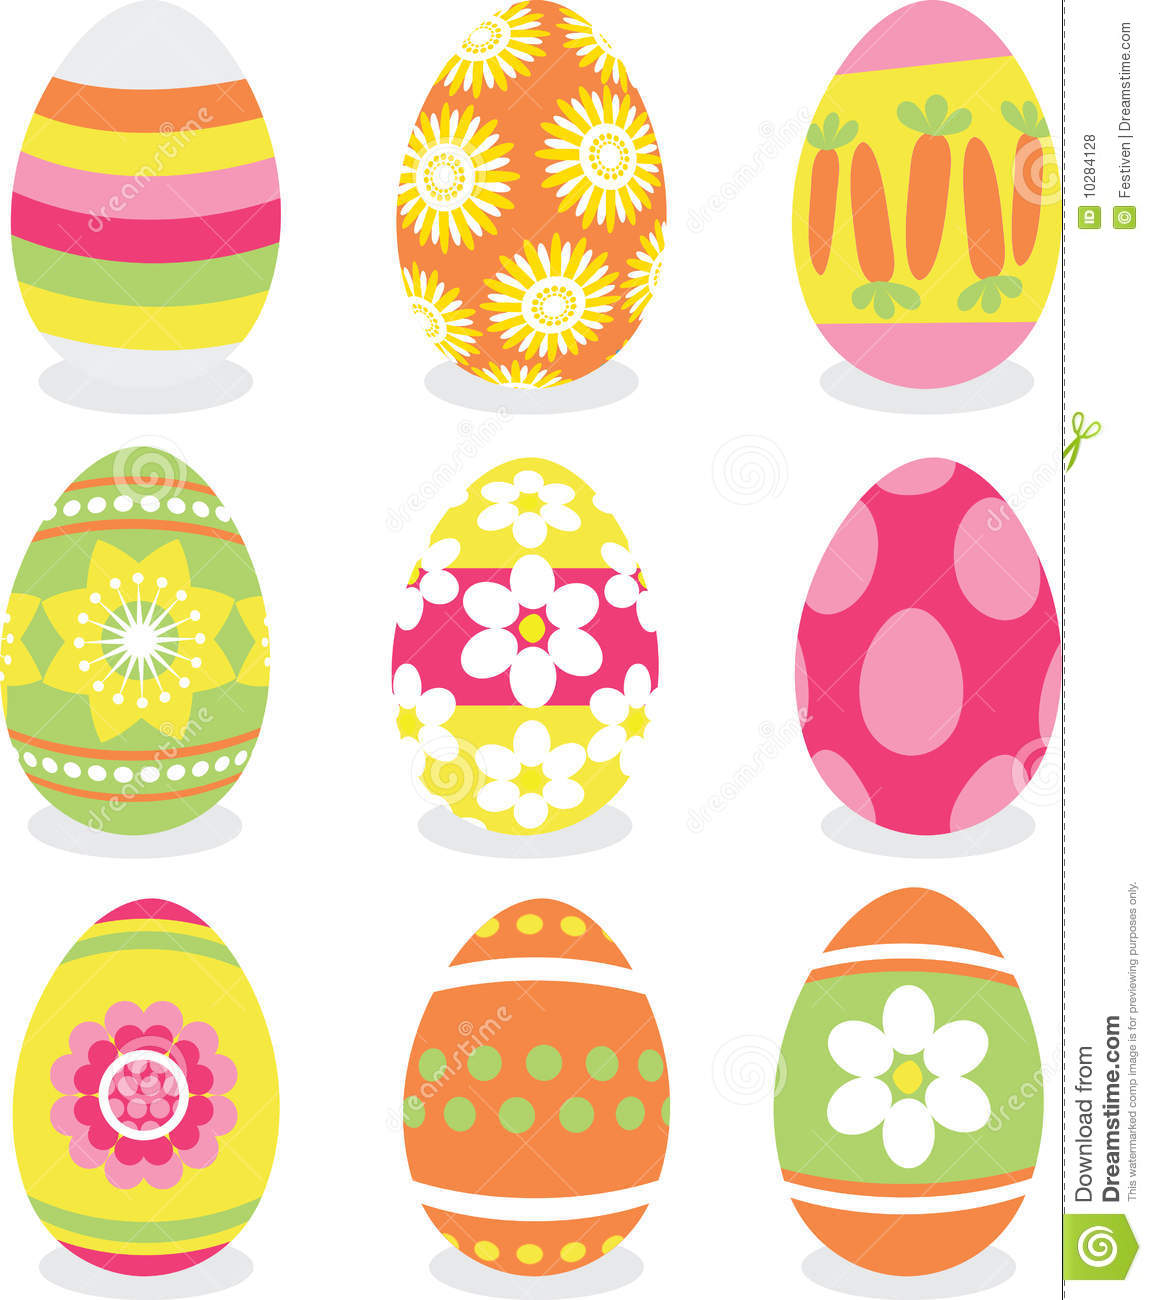 easter eggs icon set royalty free stock photos image. Black Bedroom Furniture Sets. Home Design Ideas